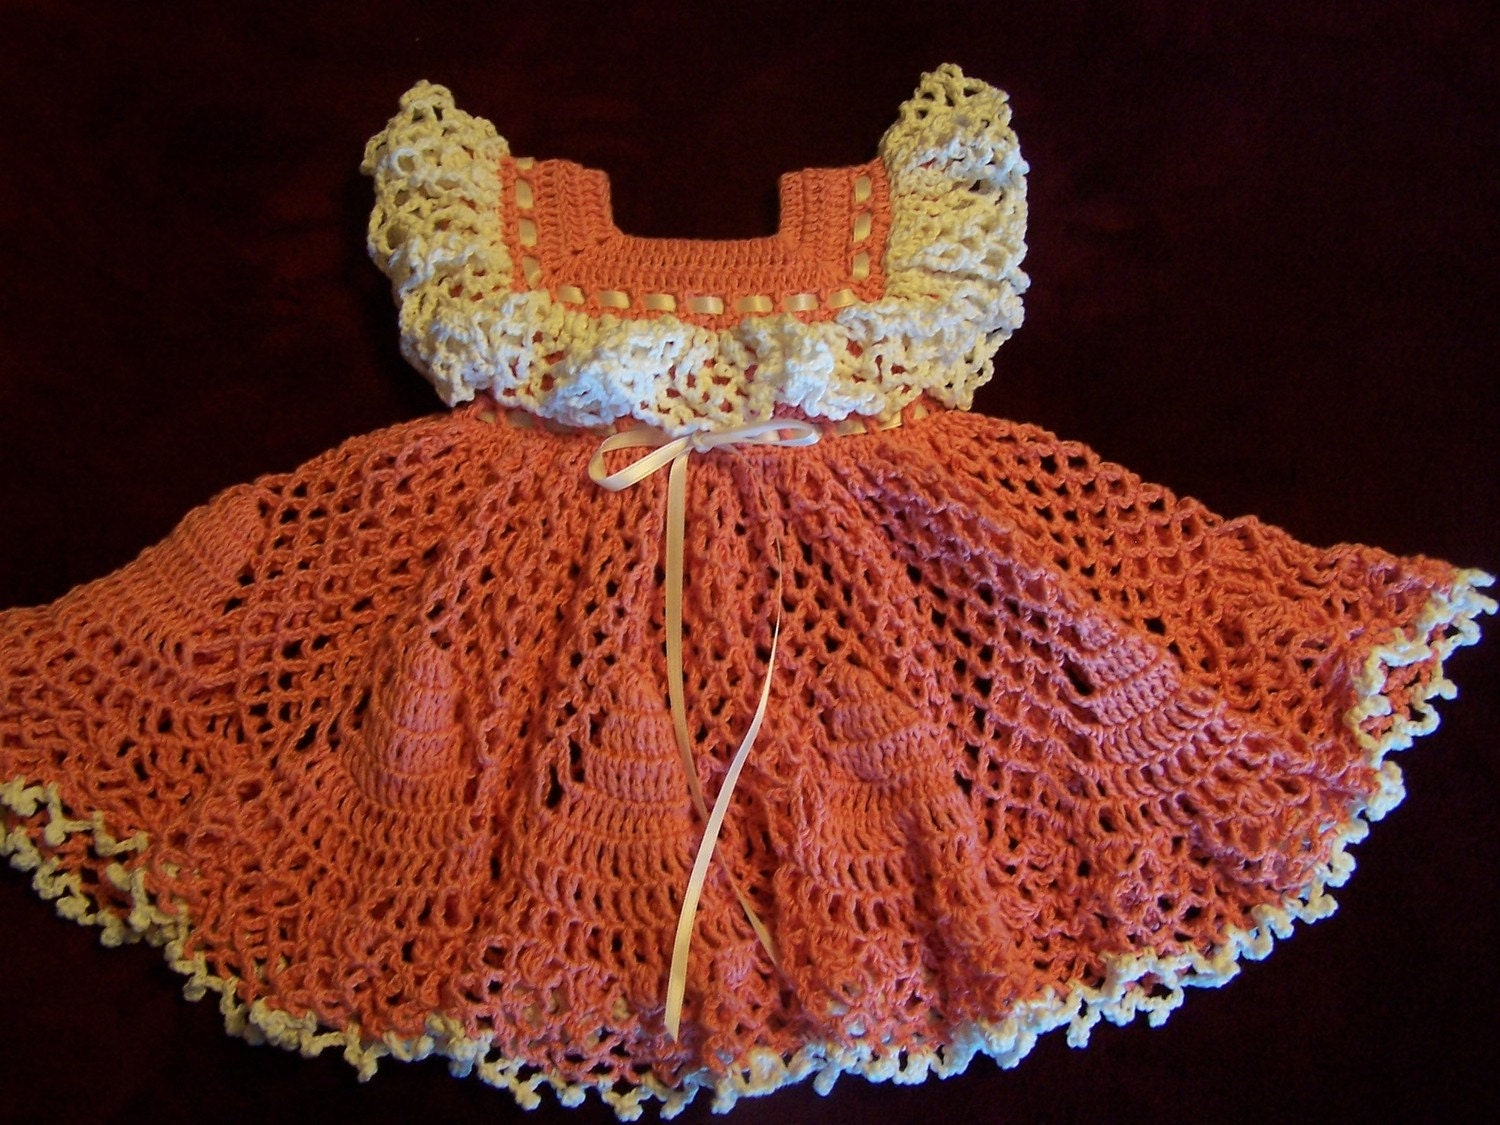 Coral Frilly Frock & Socks